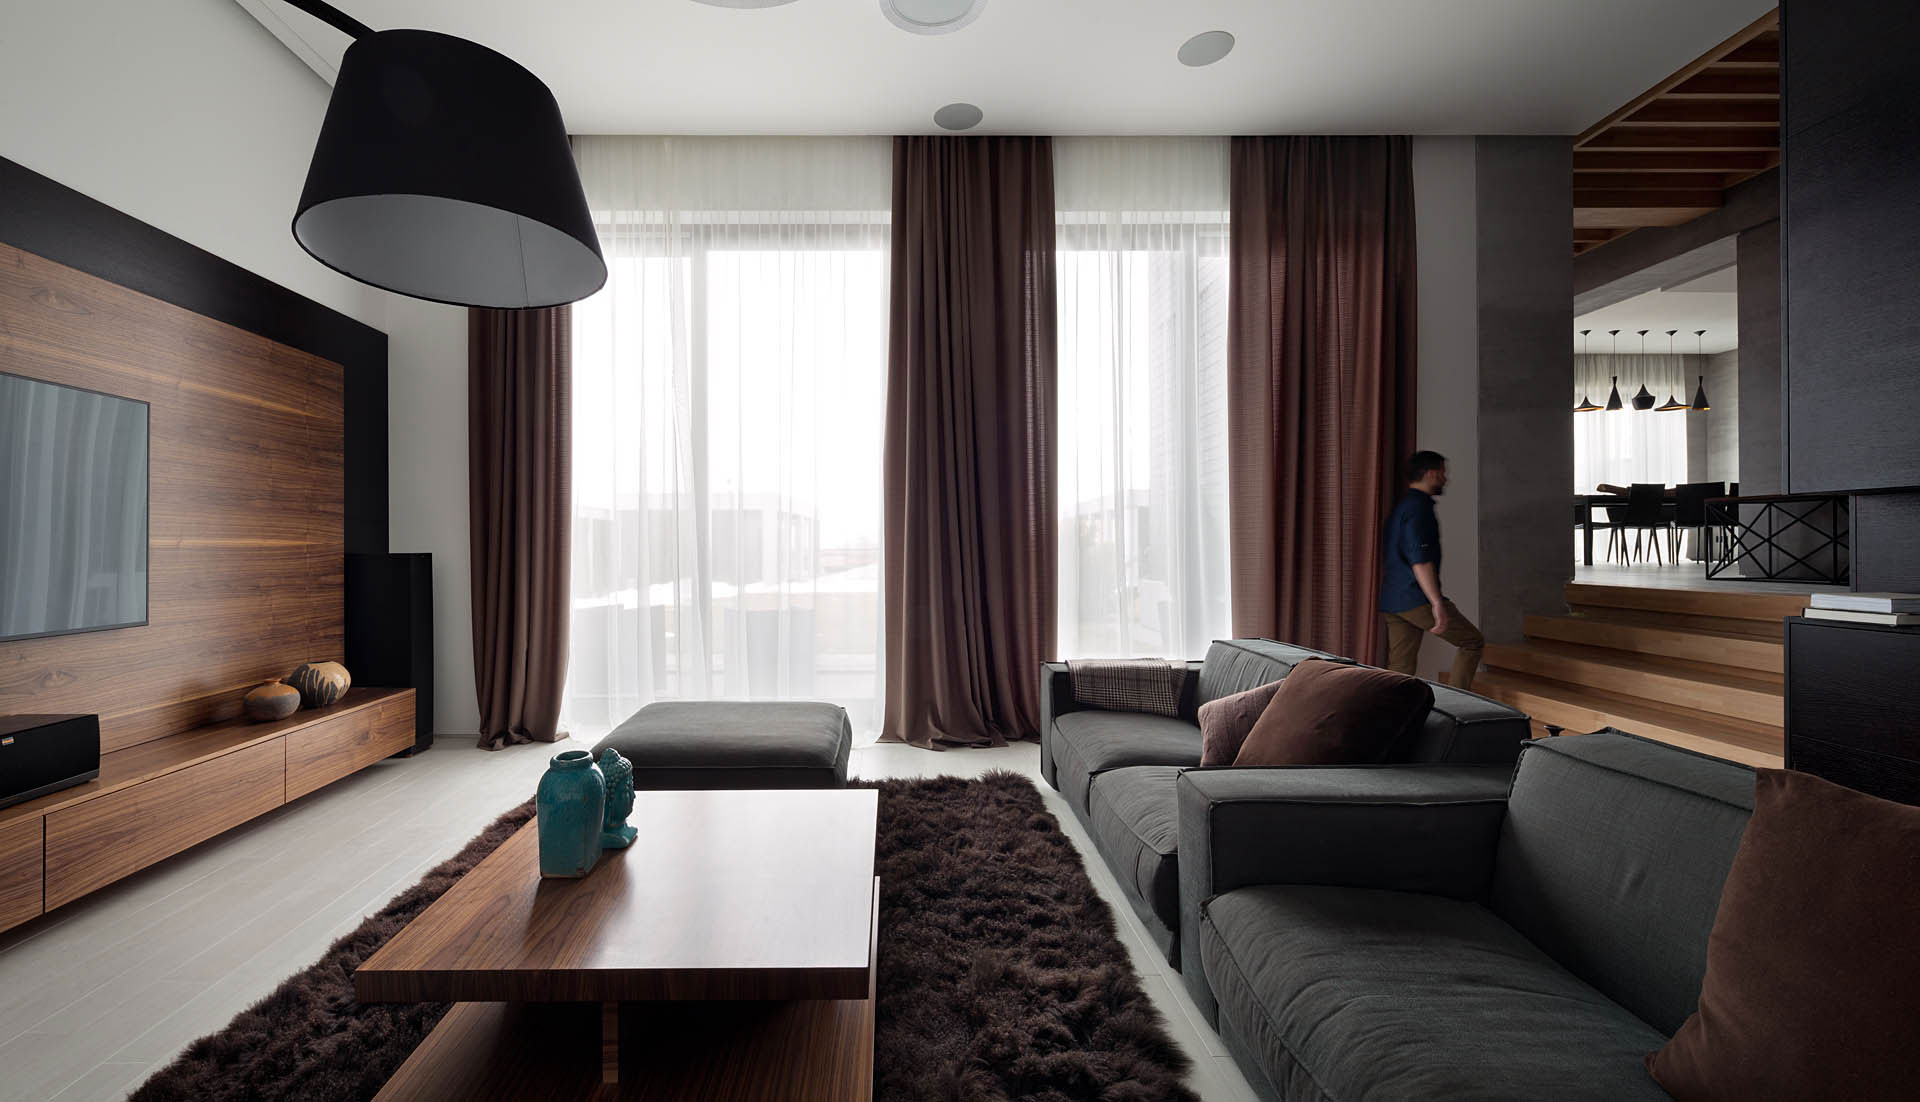 Two Levels House in Dnipropetrovsk by NOTT DESIGN-08